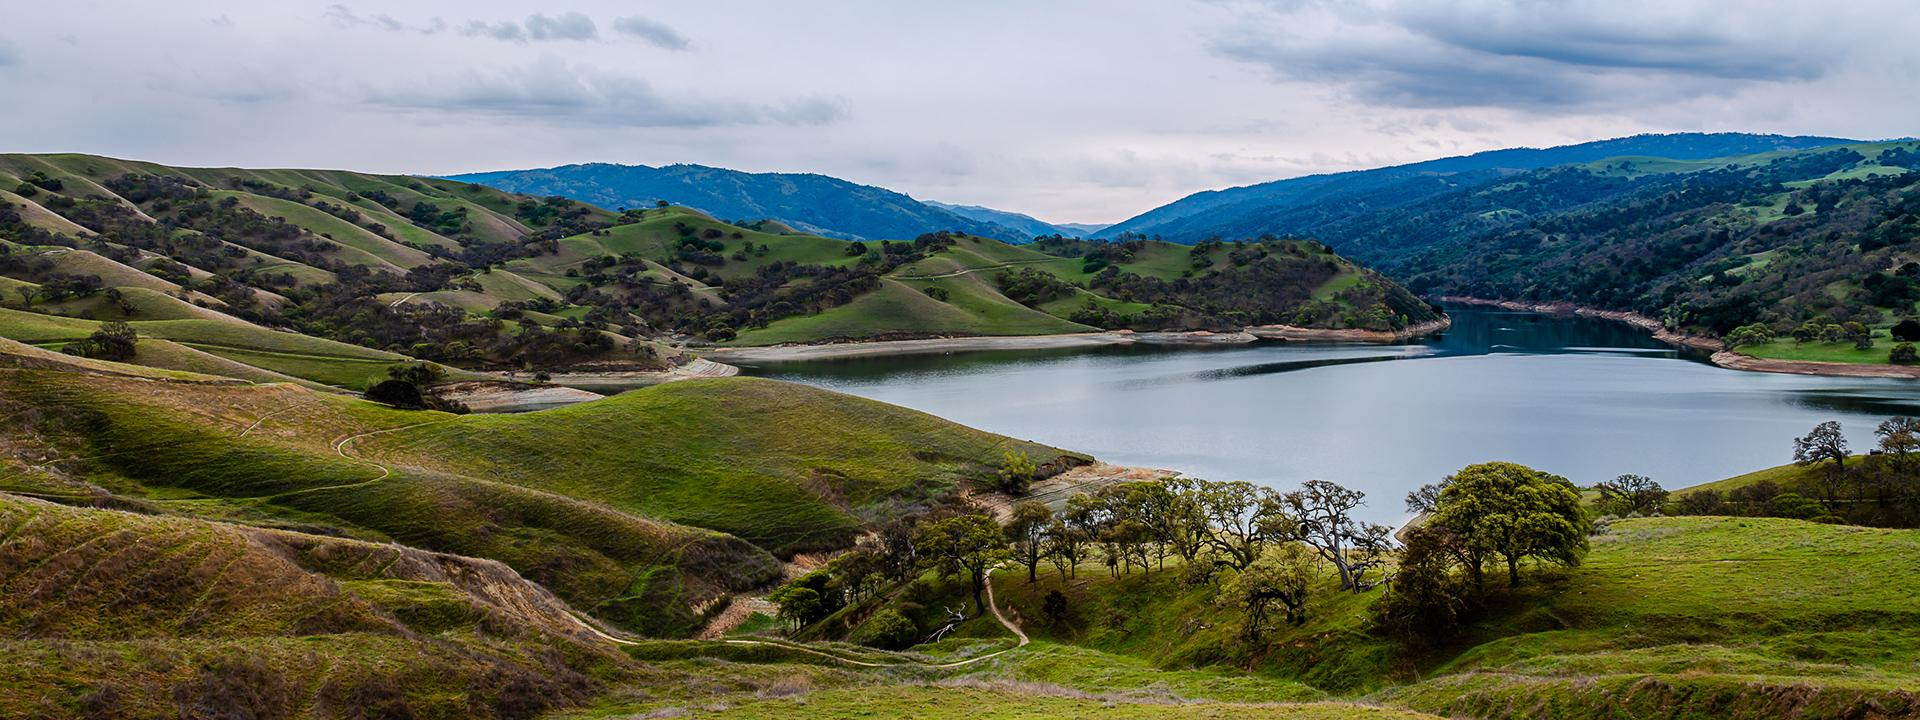 View of Lake Del Valle Regional Park